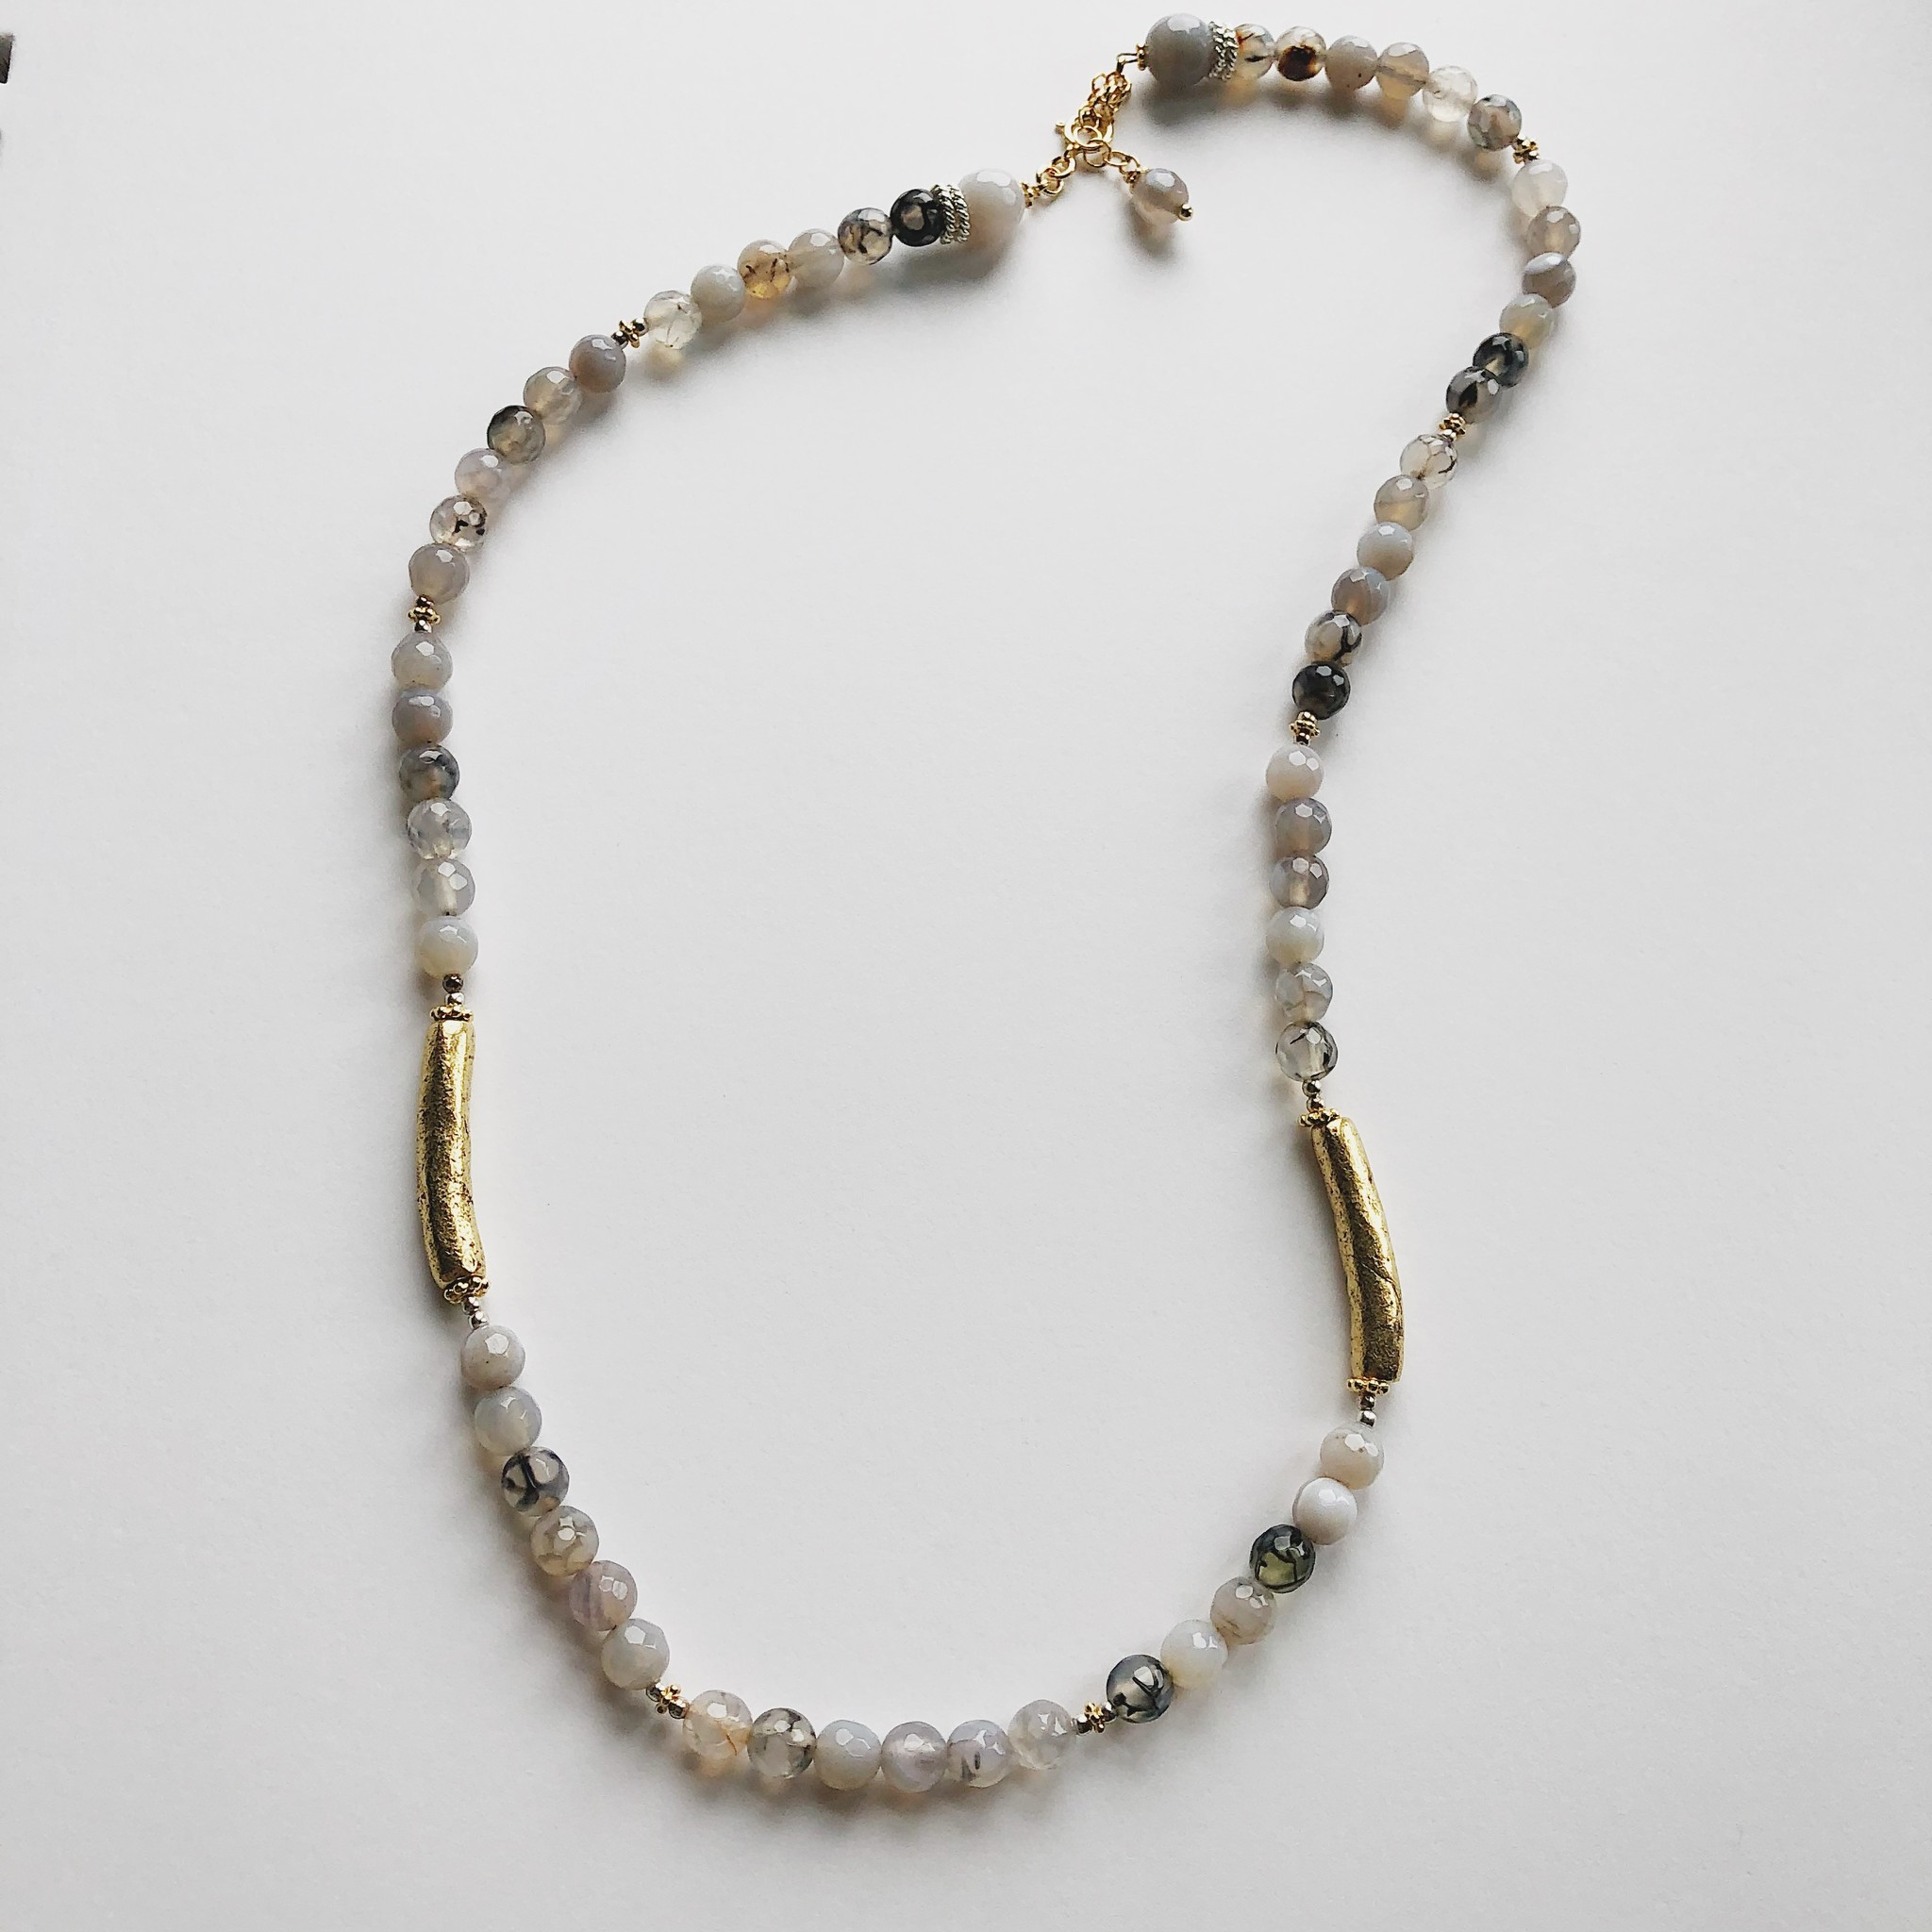 Howling Dog Hectate Necklace- Grey